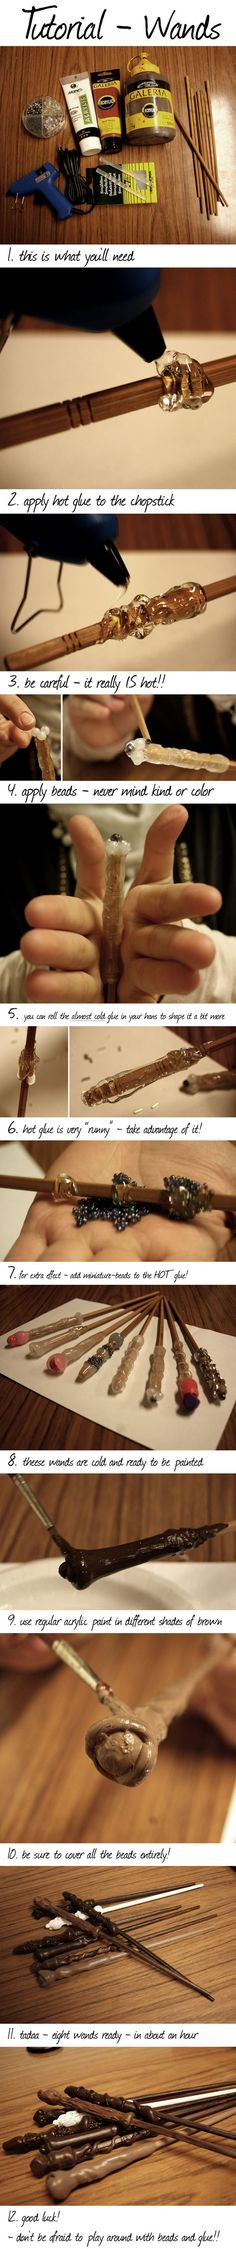 Harry Potter wands made using a hot glue gun, chopsticks and acrylic paint. ...this is SO COOL!